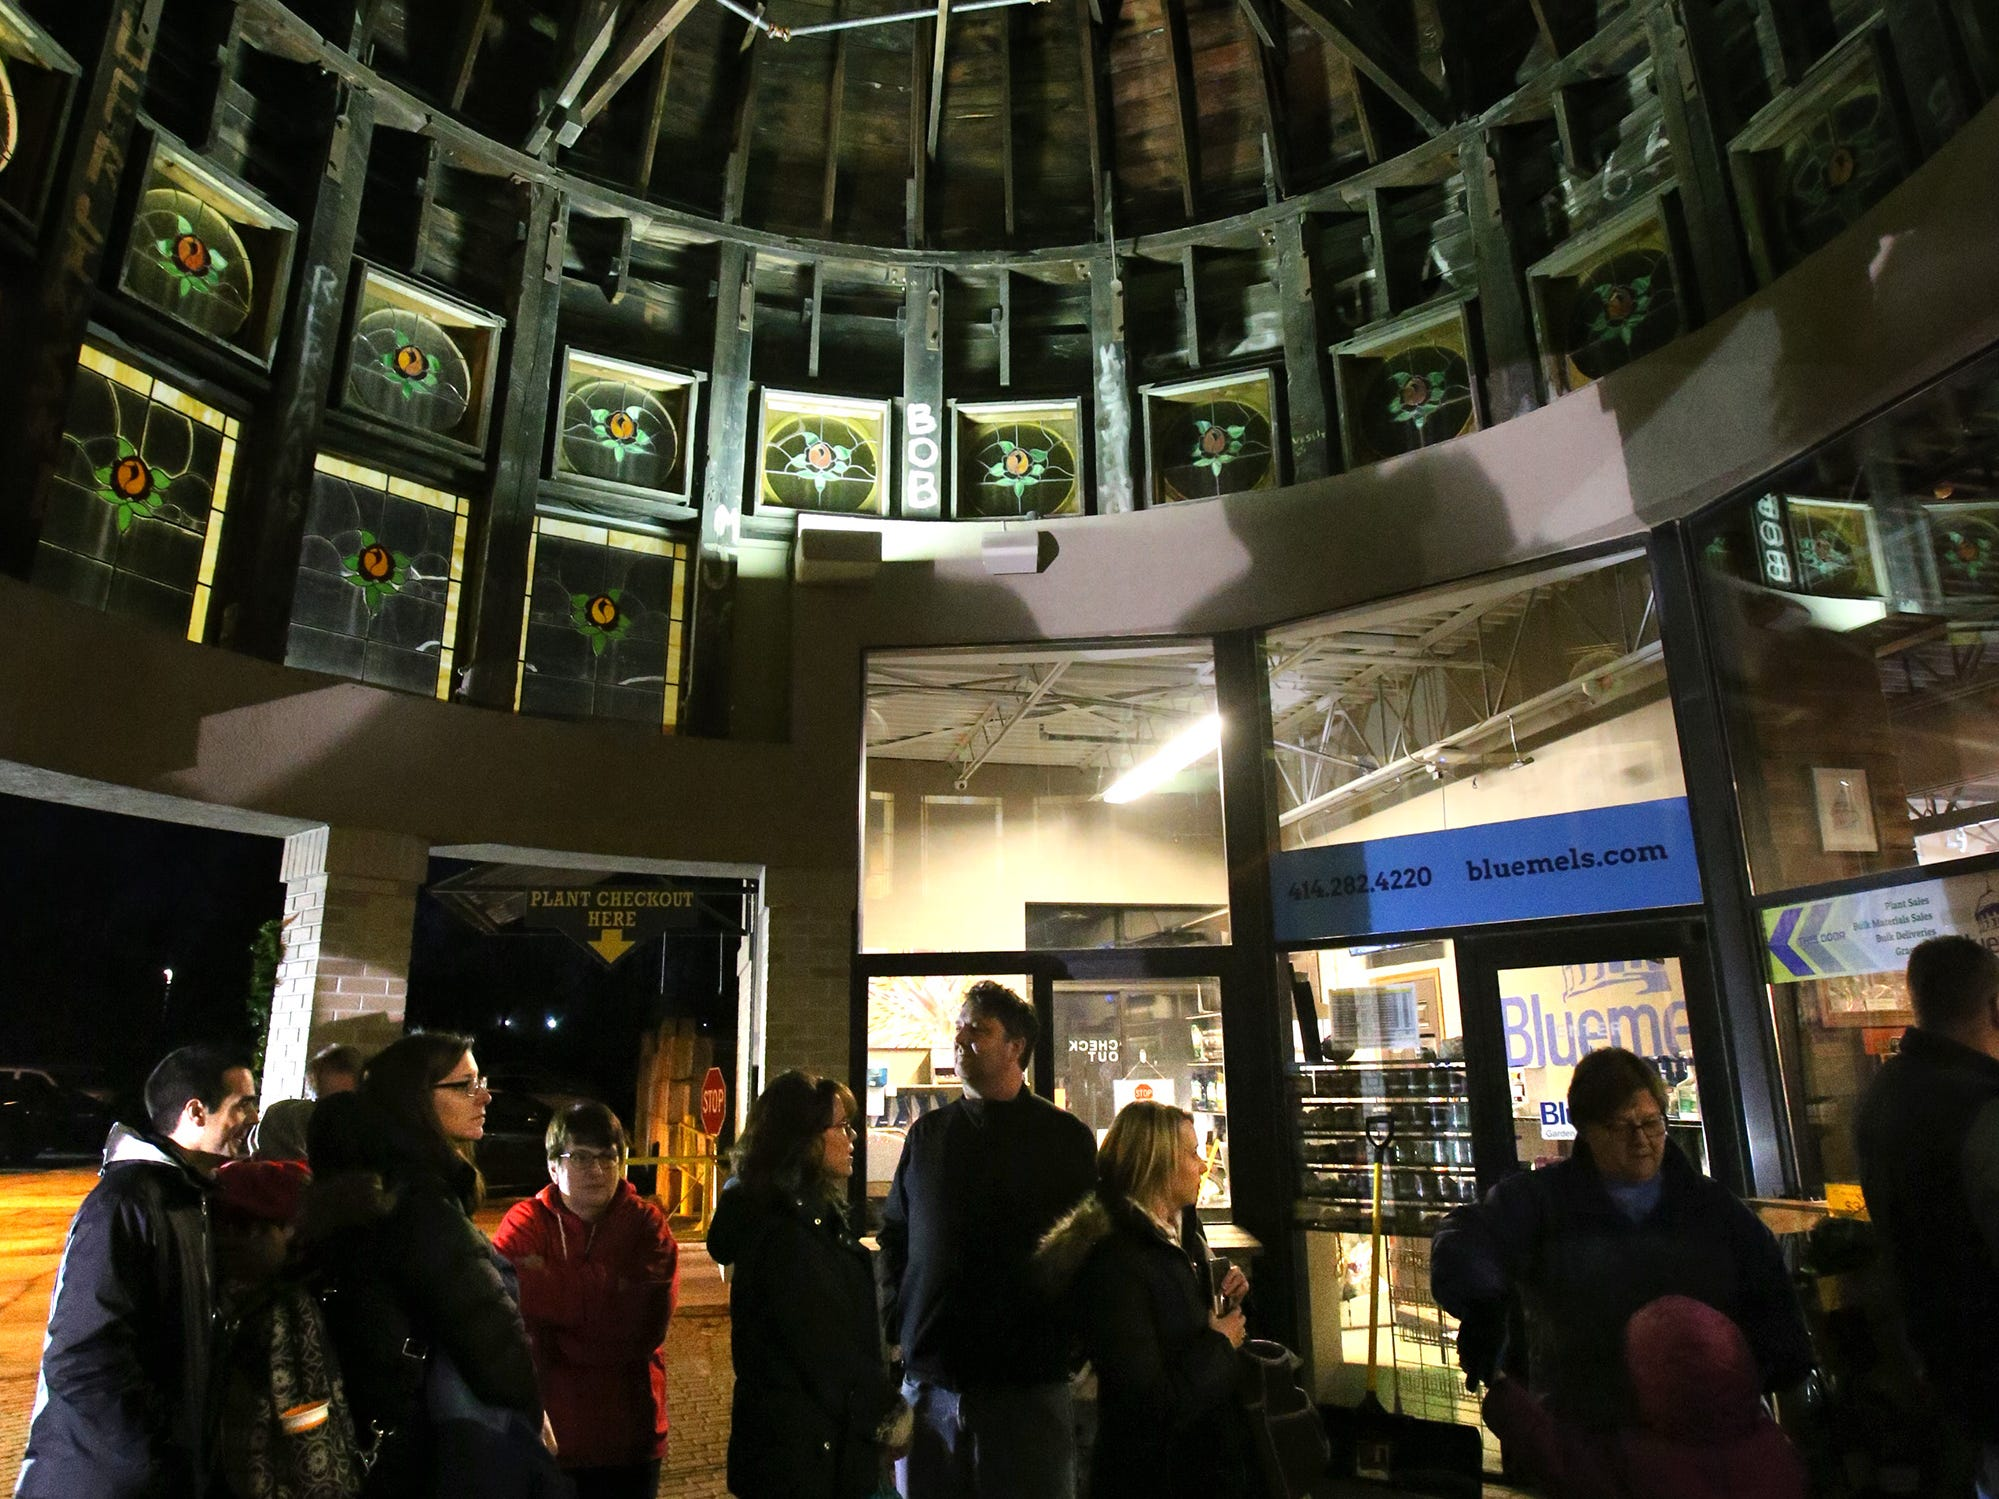 Families wait beneath the old South Division High School dome to enter Blum Coffee Garden for a visit with Santa at Bluemel's Garden and Landscape Center in Dec. 14.